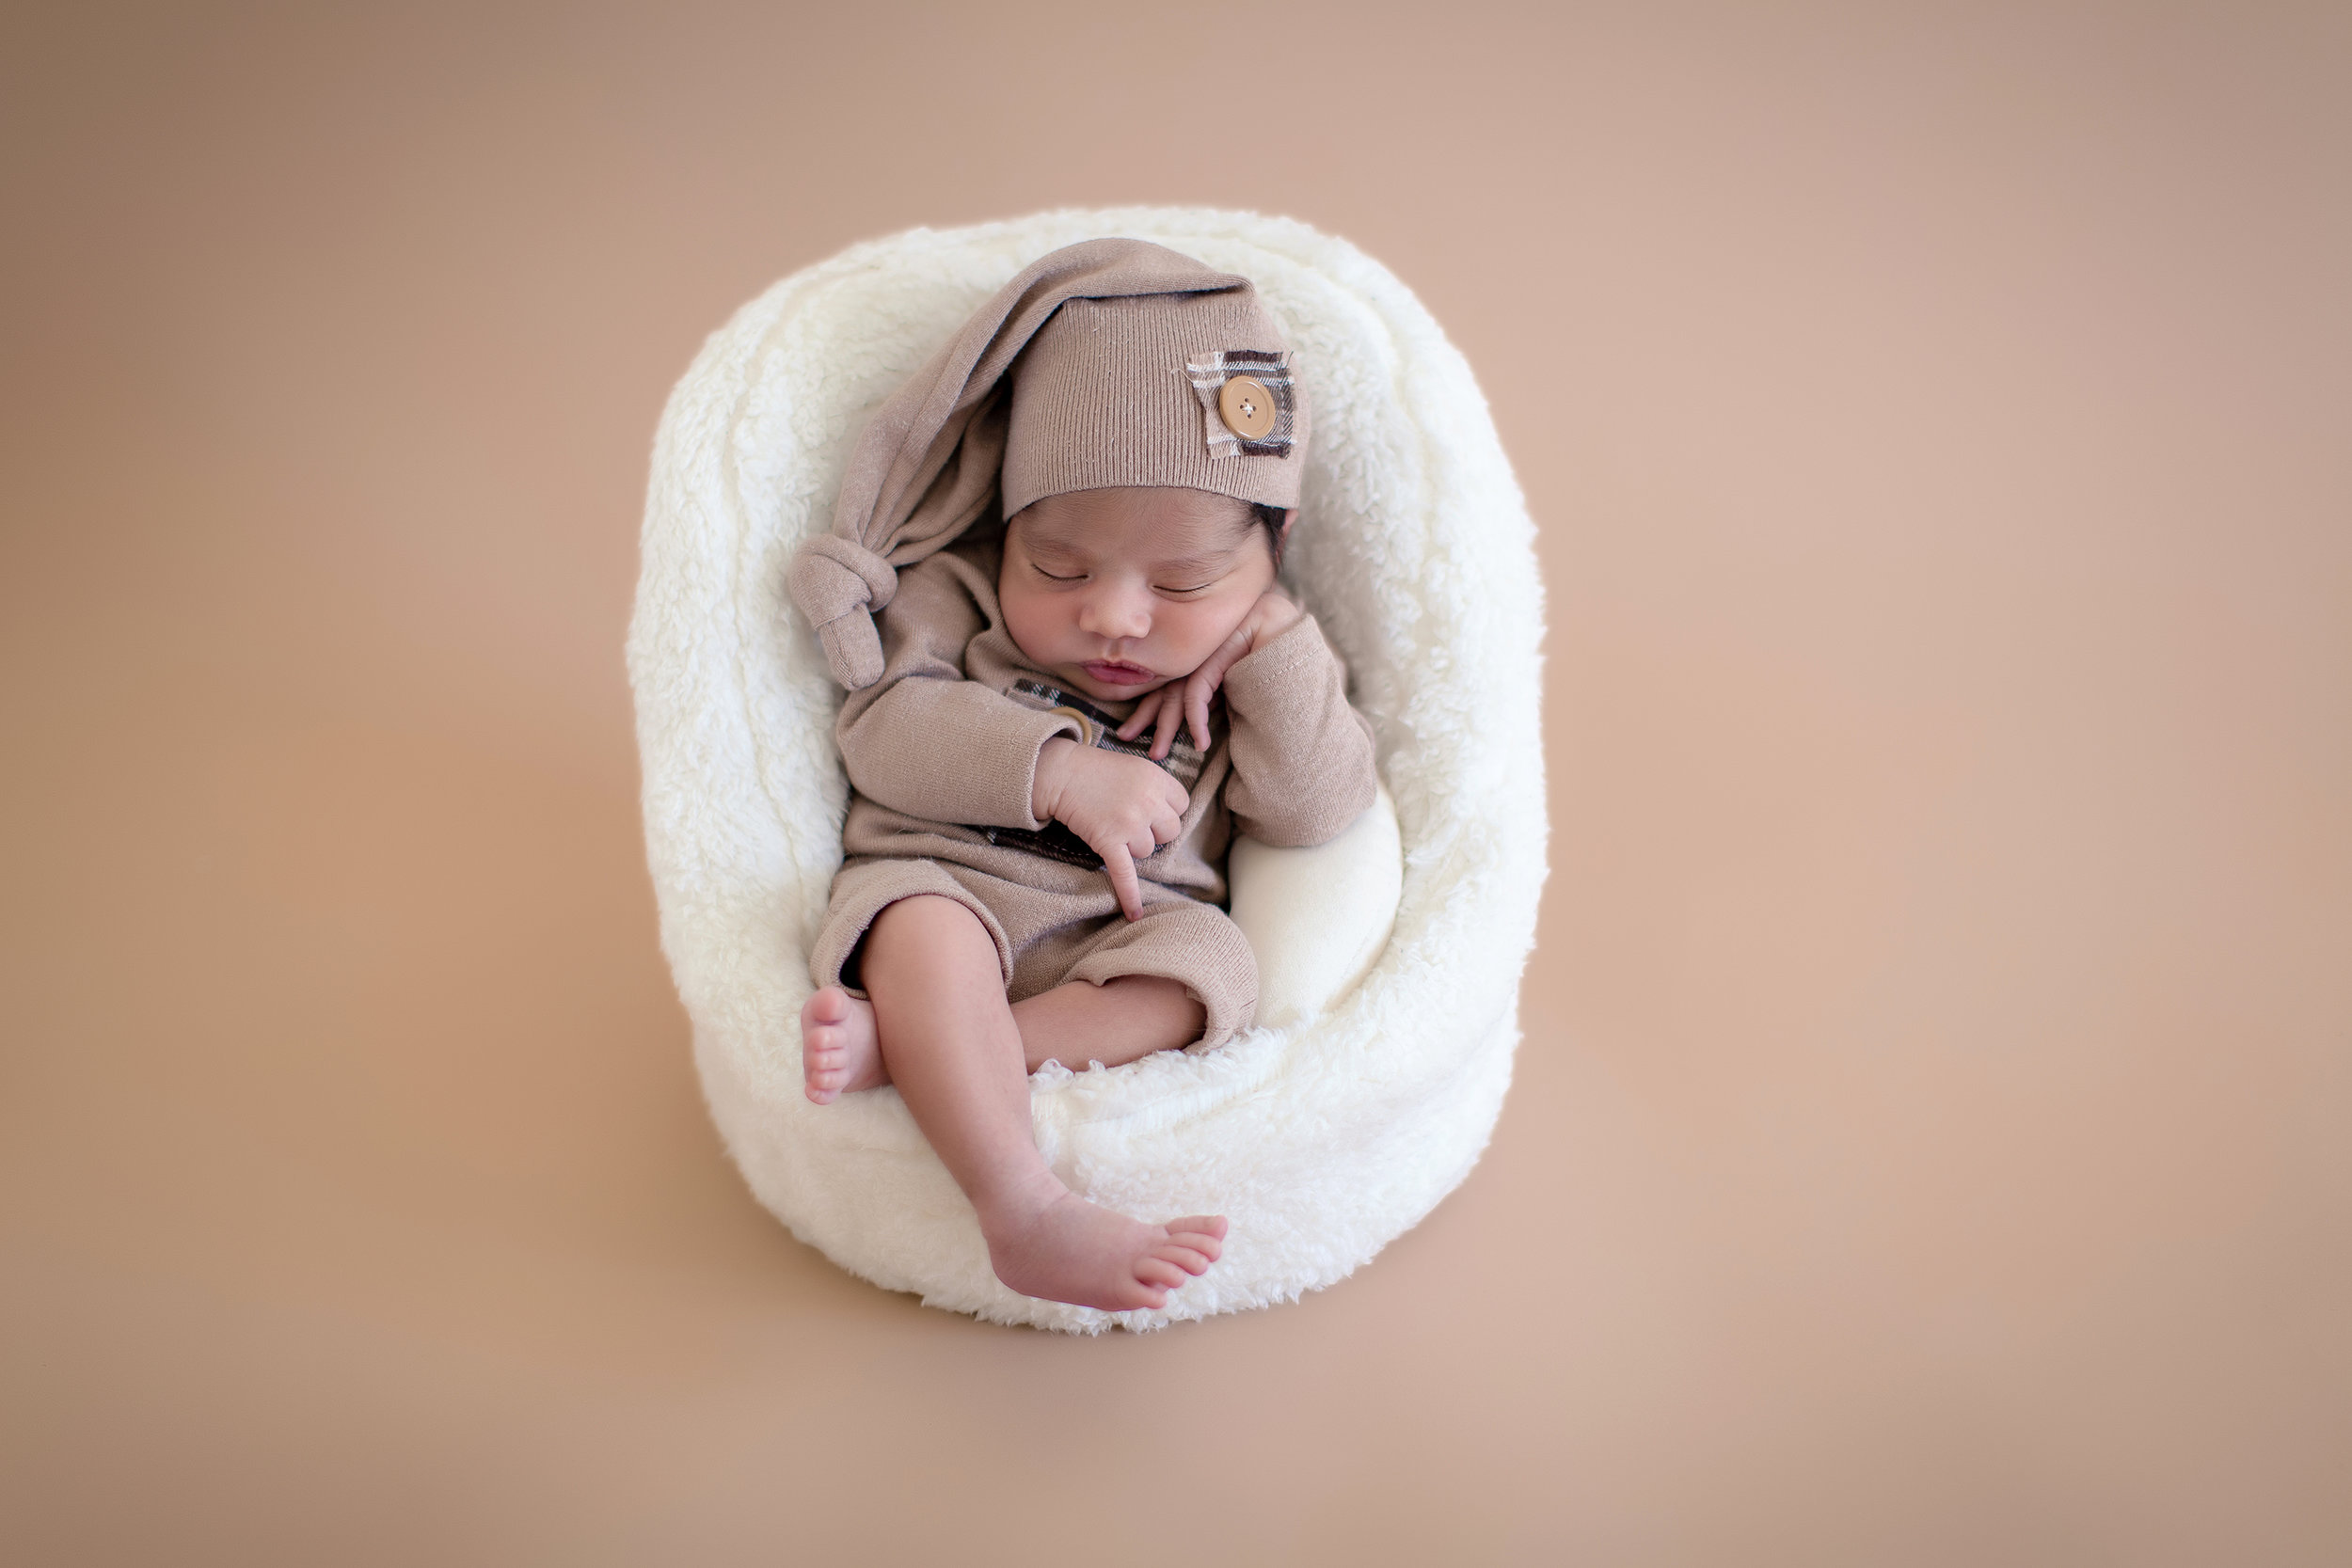 Newborn baby boy is posed comfortably in a little chair. Newborn Photoshoot ideas. Calgary baby and newborn photographer - Milashka Photography